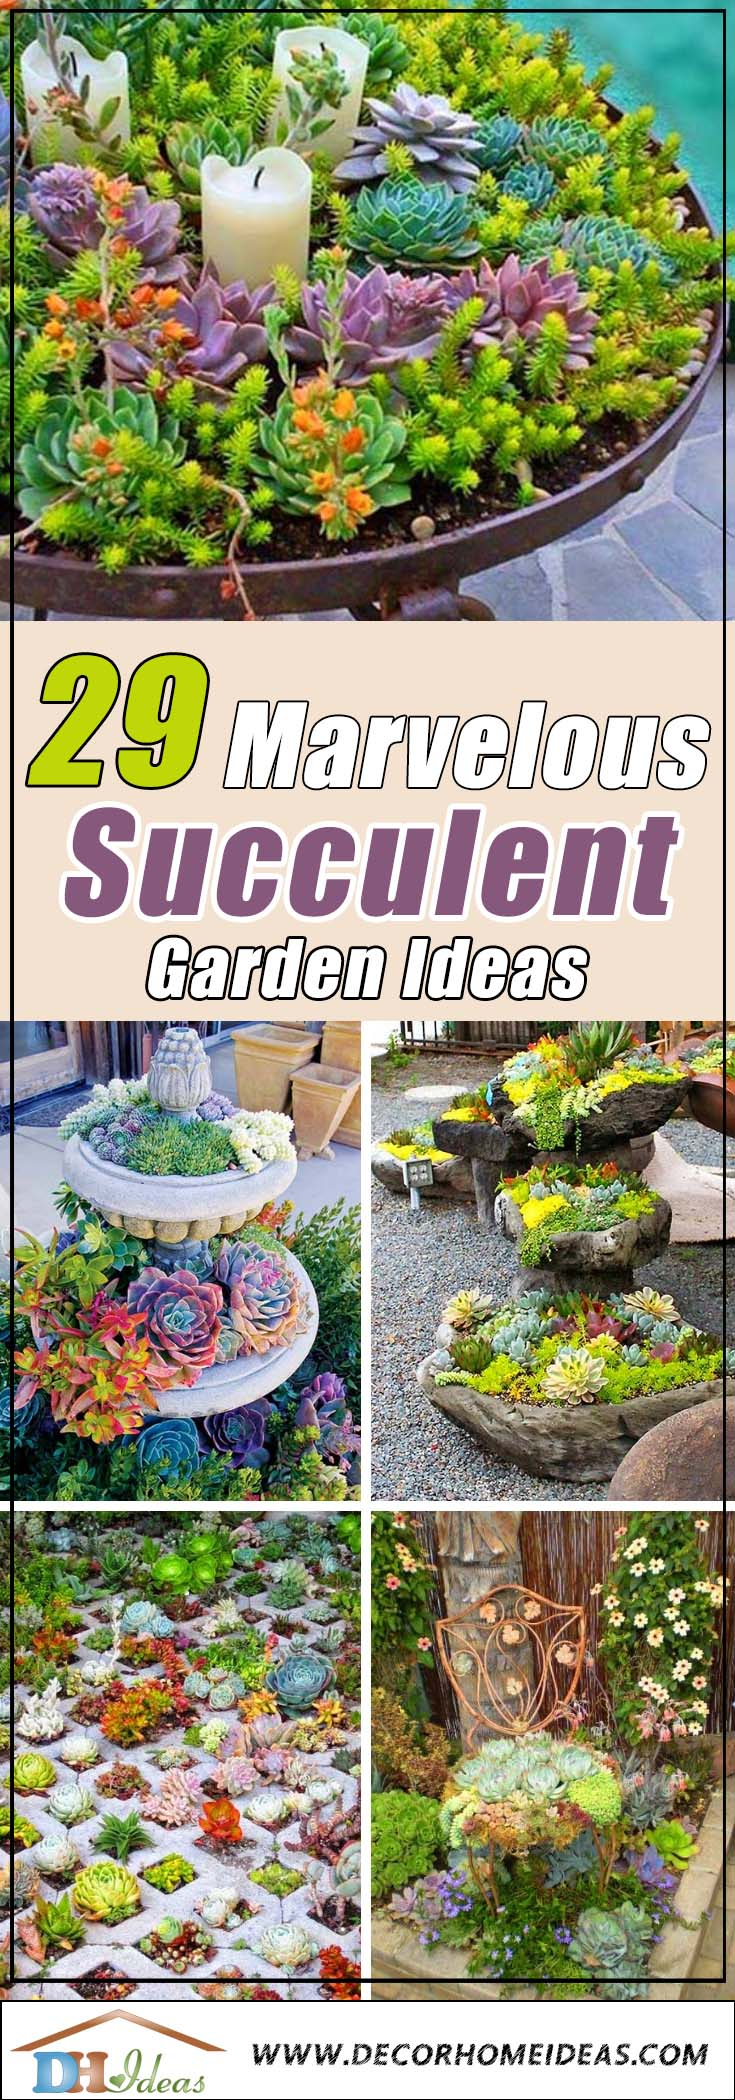 29 Marvelous Succulent Garden Ideas Decor Home Ideas